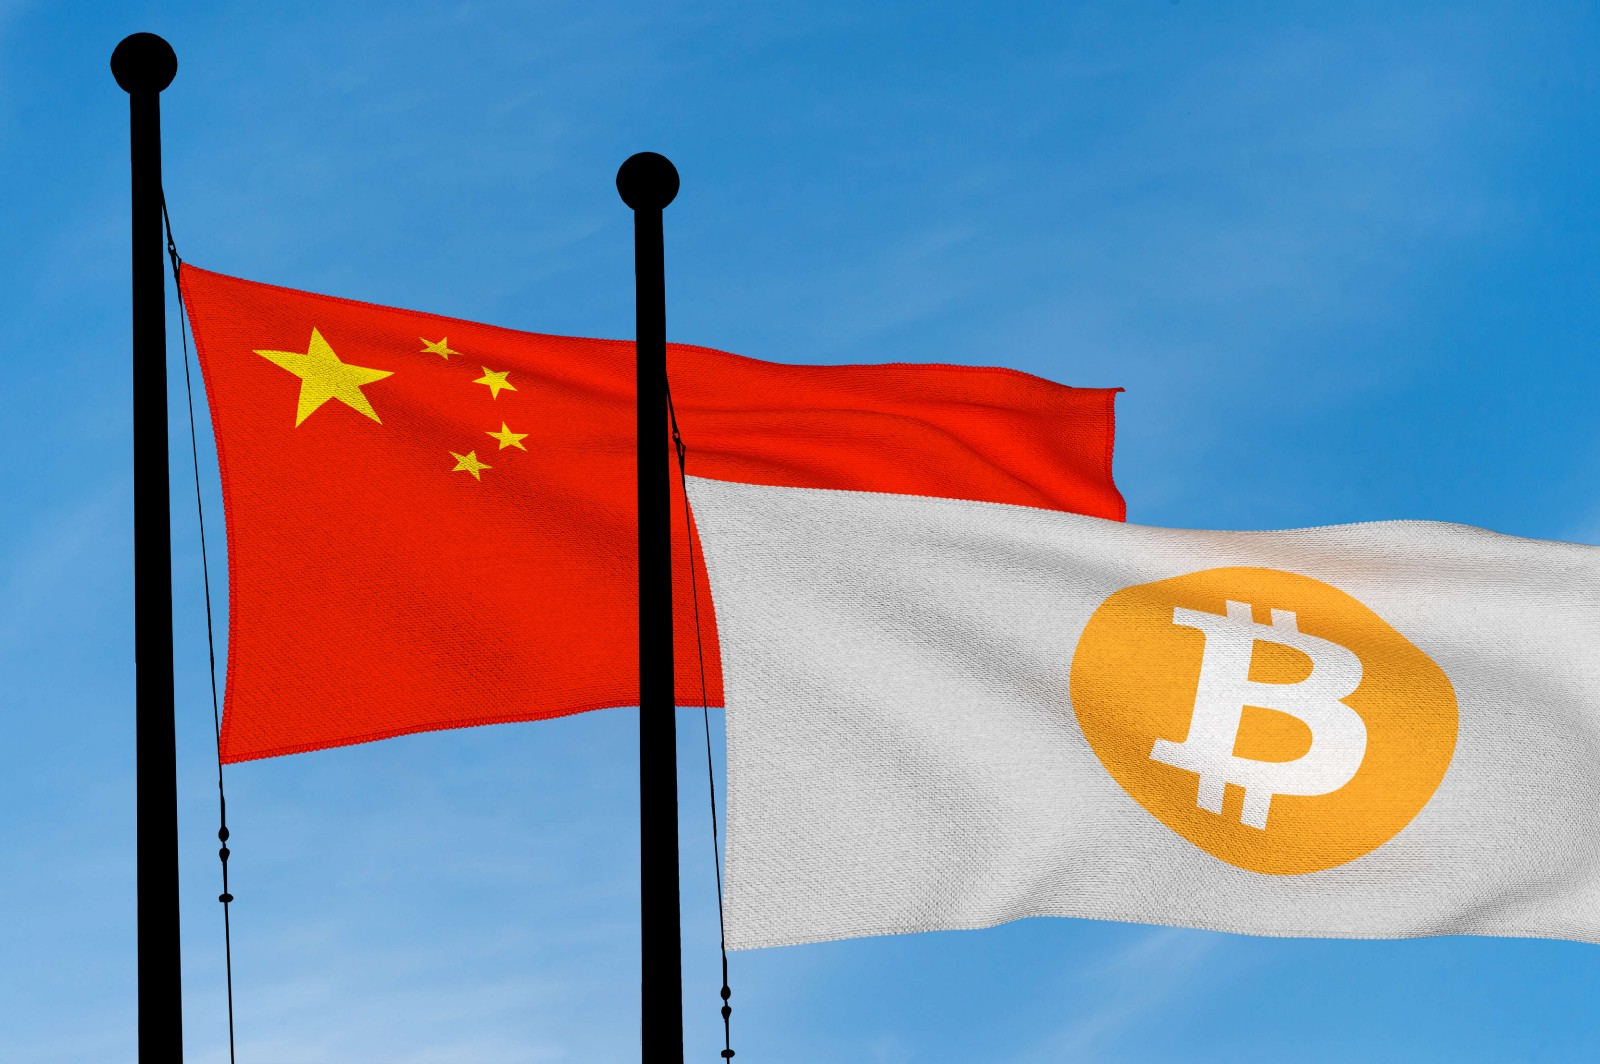 /china-expands-oversight-over-blockchain-with-new-anti-anonymity-regulations-5753d474d916 feature image